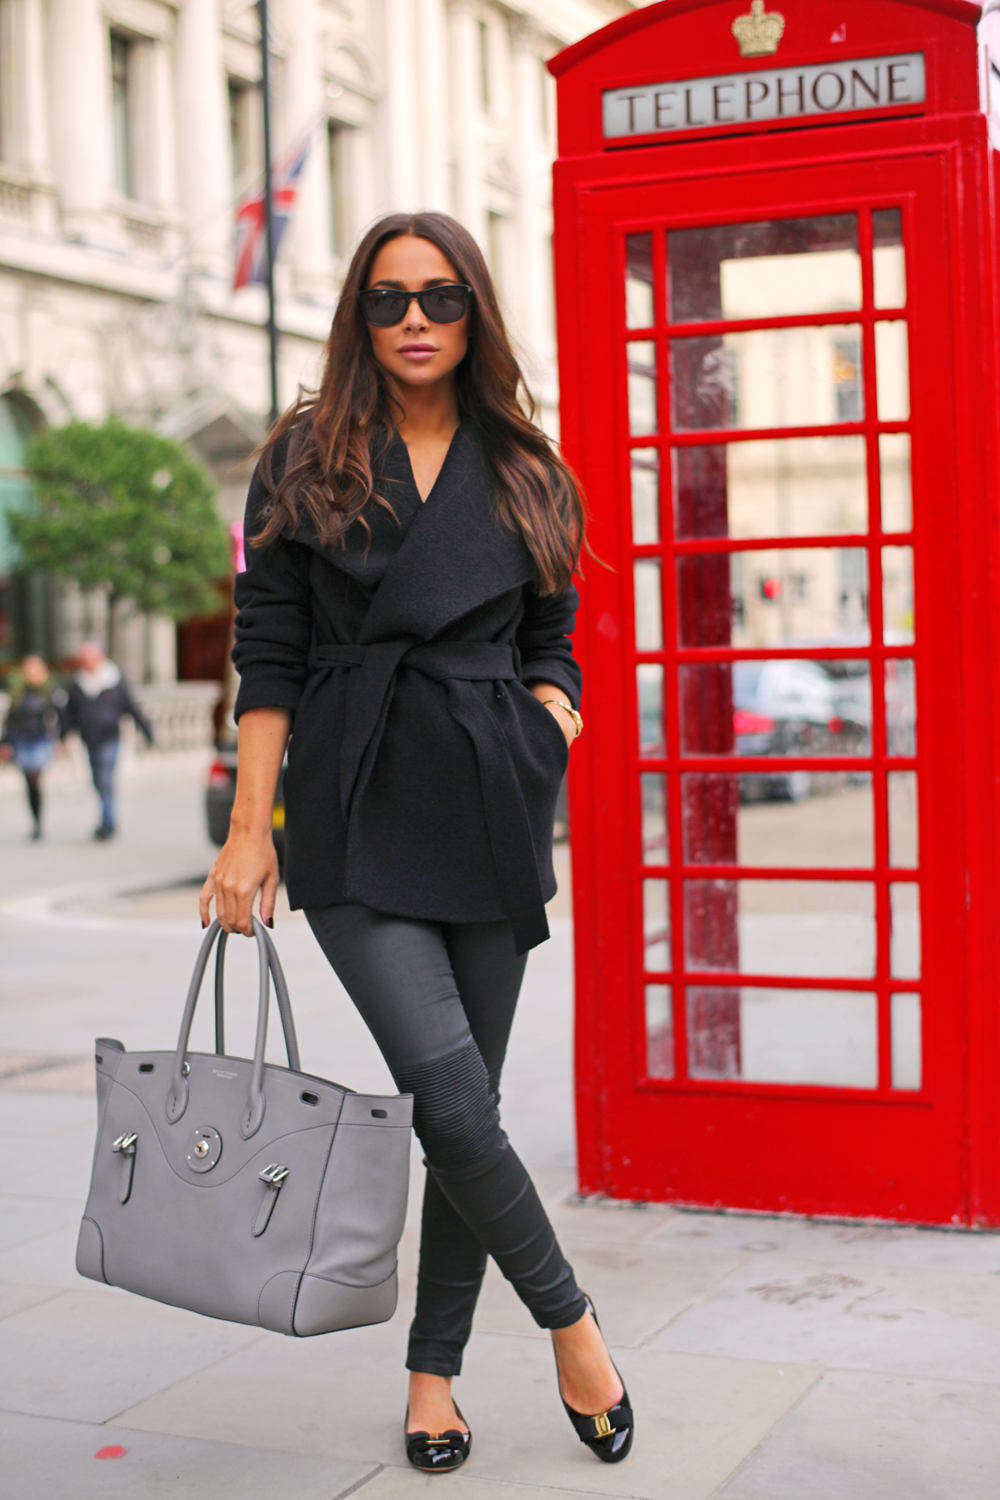 Johanna Olsson is wearing a black flat shoes from Salvatore Ferragamo, trousers from Zara, black coat from Filippa K, sunglasses from Givenchy and the bag is Ralph Lauren